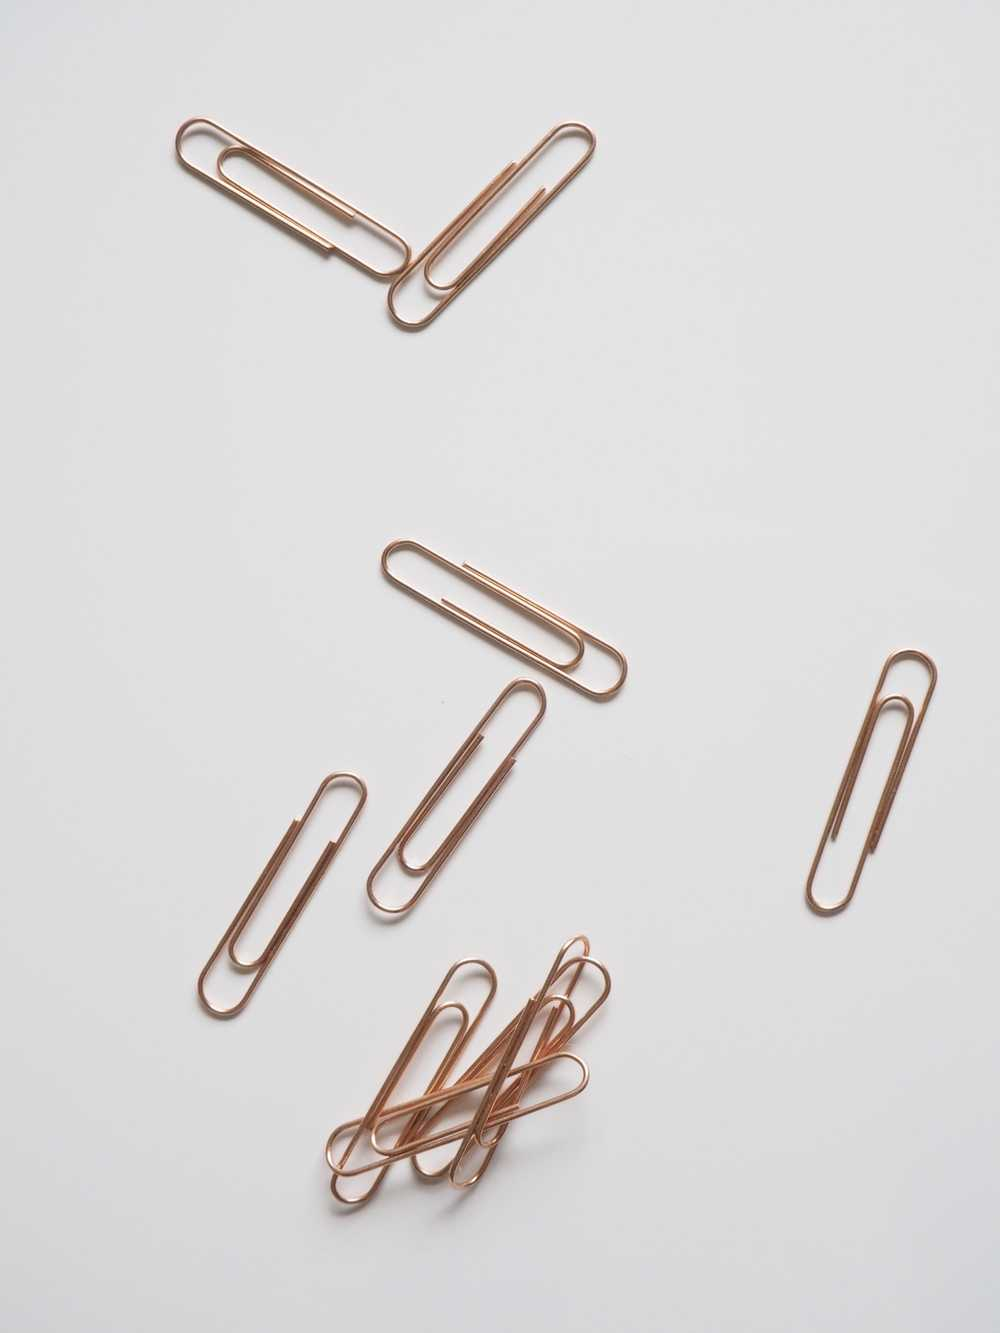 brown paper clips on white surface